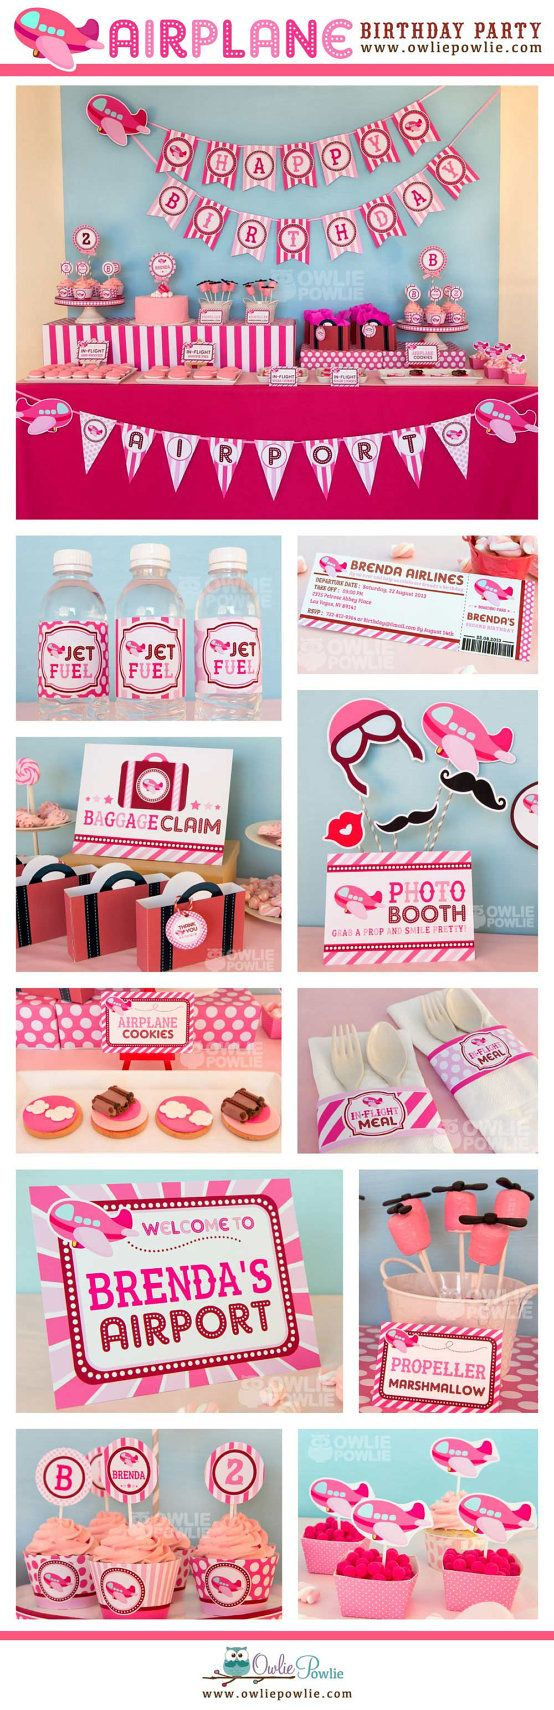 Pink Airplane BIRTHDAY Party Printable Package & Invitation, INSTANT DOWNLOAD, You Edit Yourself with Adobe Reader